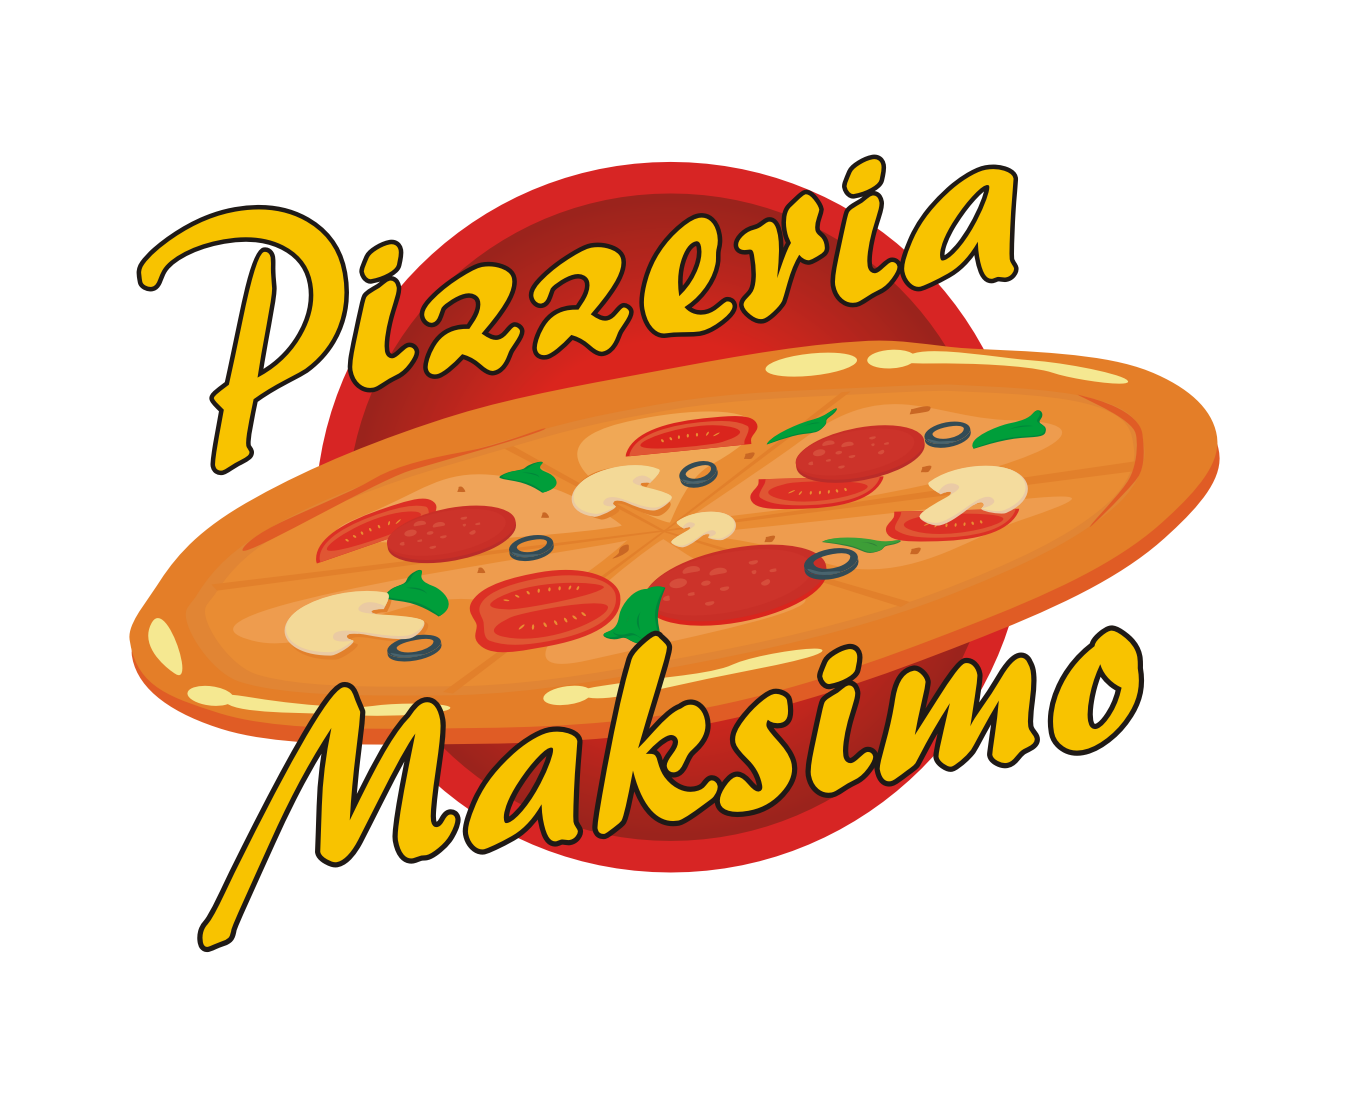 Pizzeria Makismo